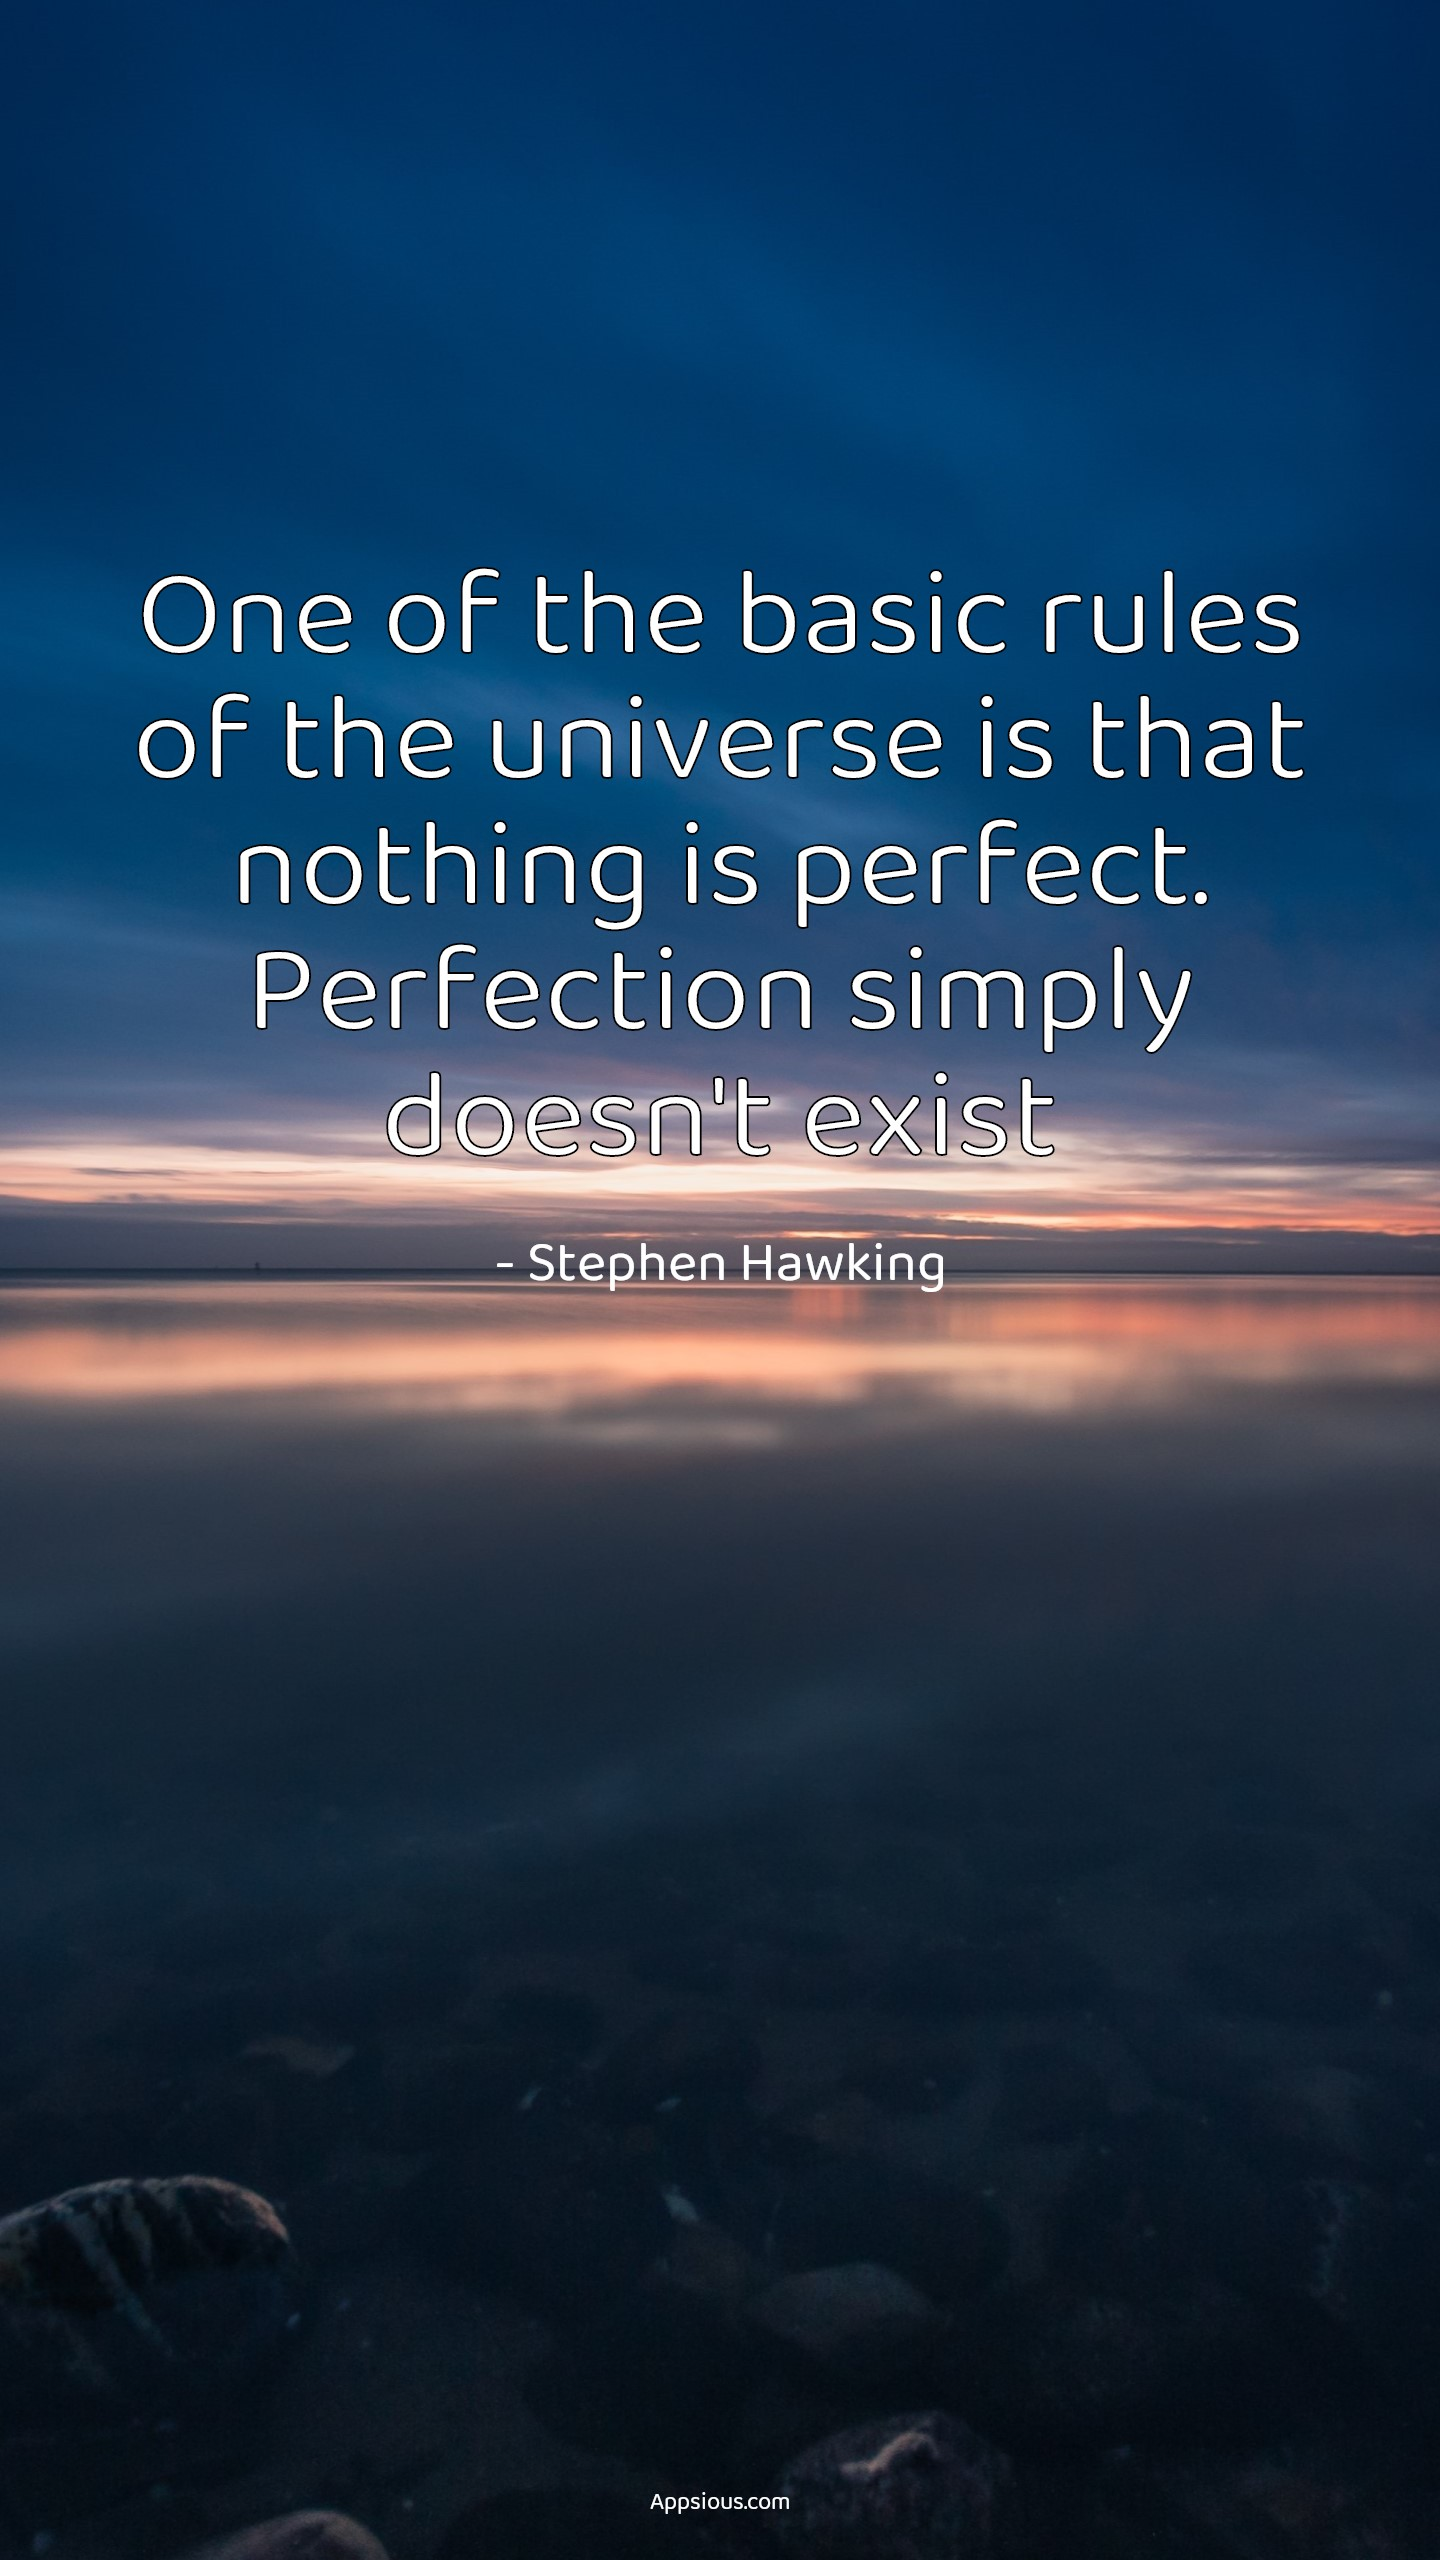 One of the basic rules of the universe is that nothing is perfect. Perfection simply doesn't exist